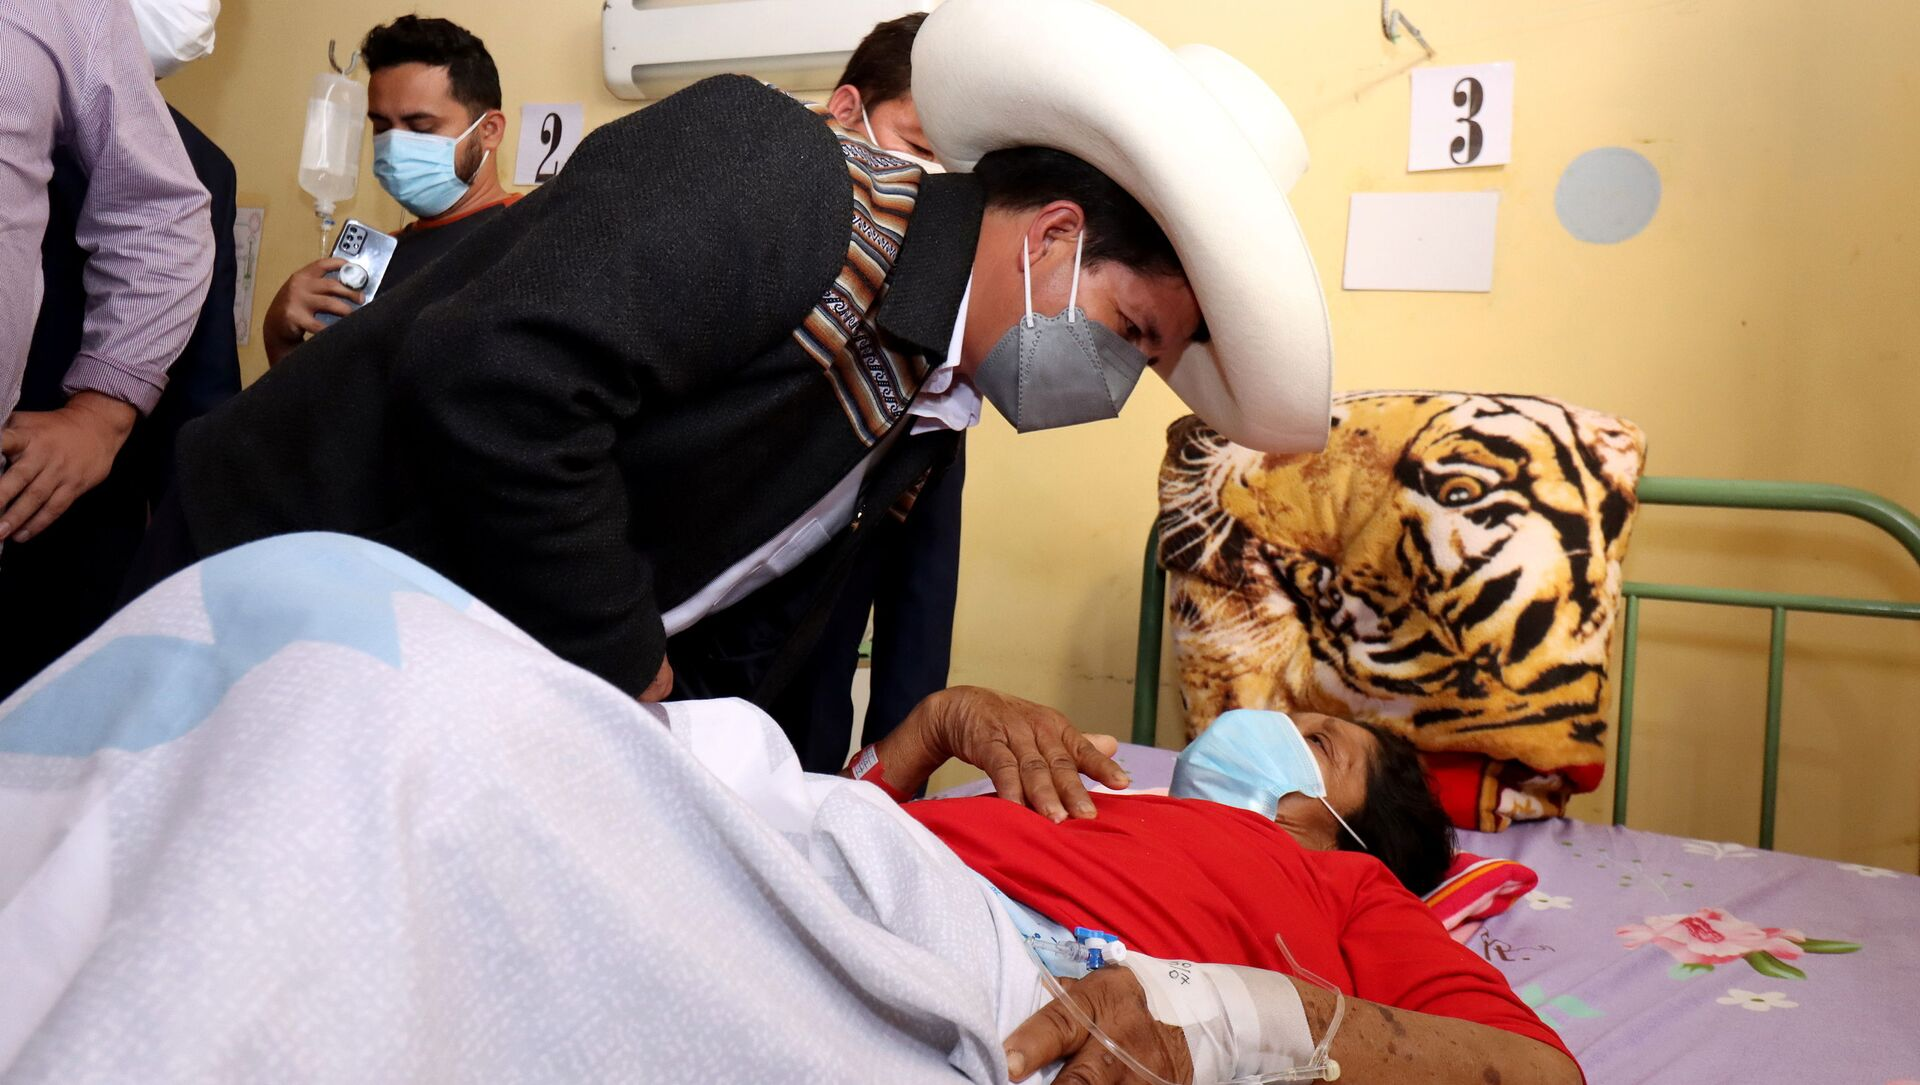 Peru's President Pedro Castillo talks to a patient who was injured during an earthquake, at a hospital in Sullana, Peru July 30, 2021 - Sputnik International, 1920, 31.07.2021